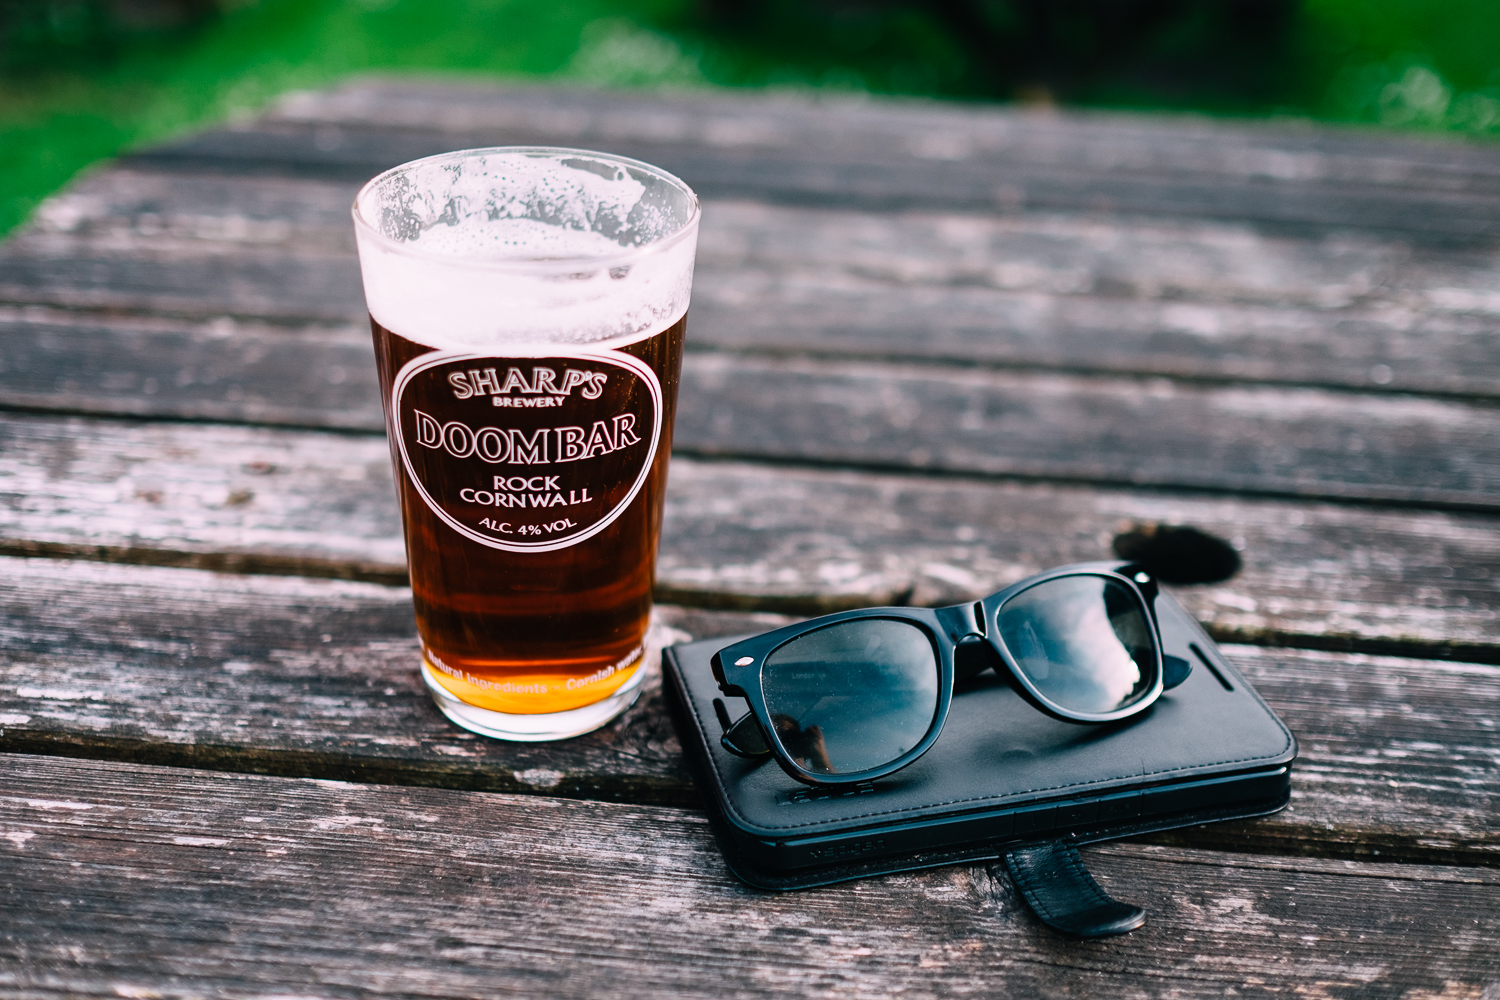 Doombar. Made in Cornwall, or maybe not.